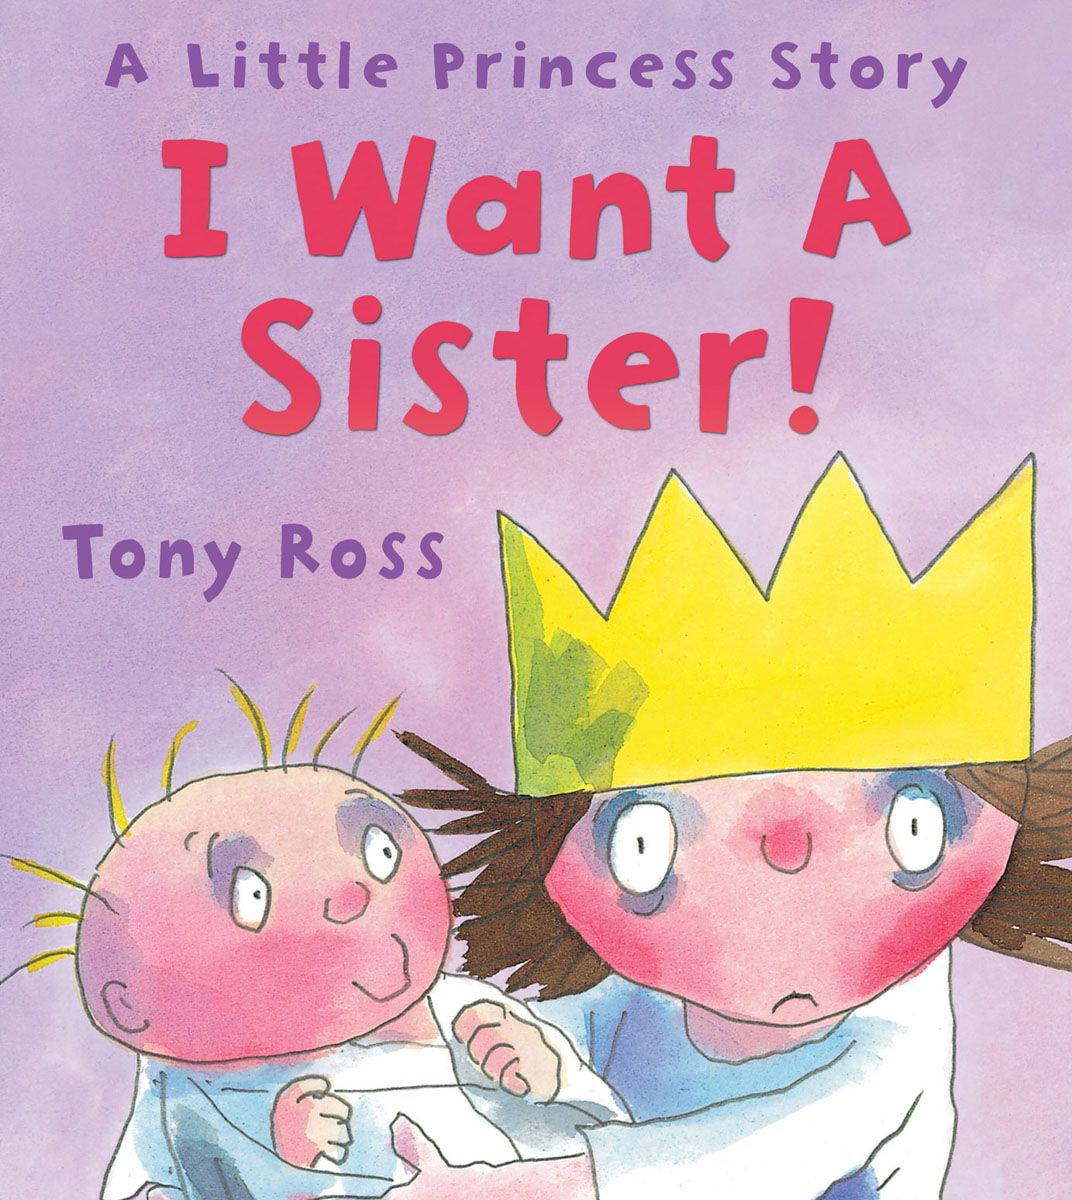 I Want a Sister!